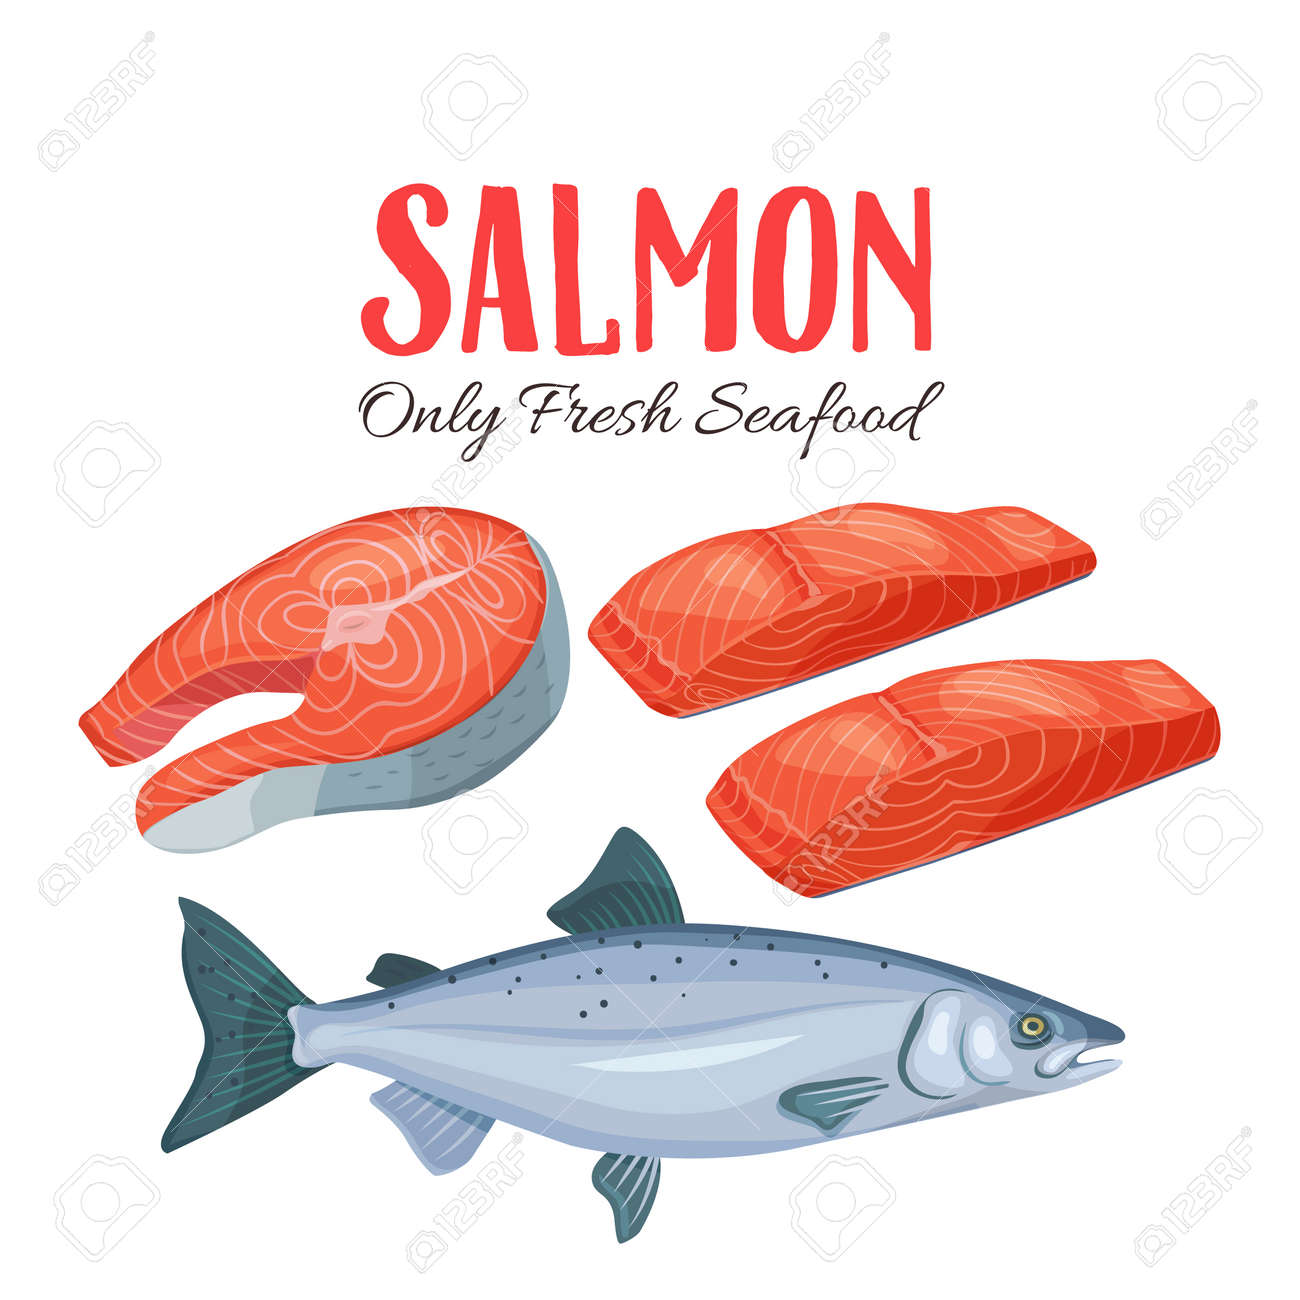 Set Salmon Vector Illustration. Fillet, Steak And Fish Salmon ...